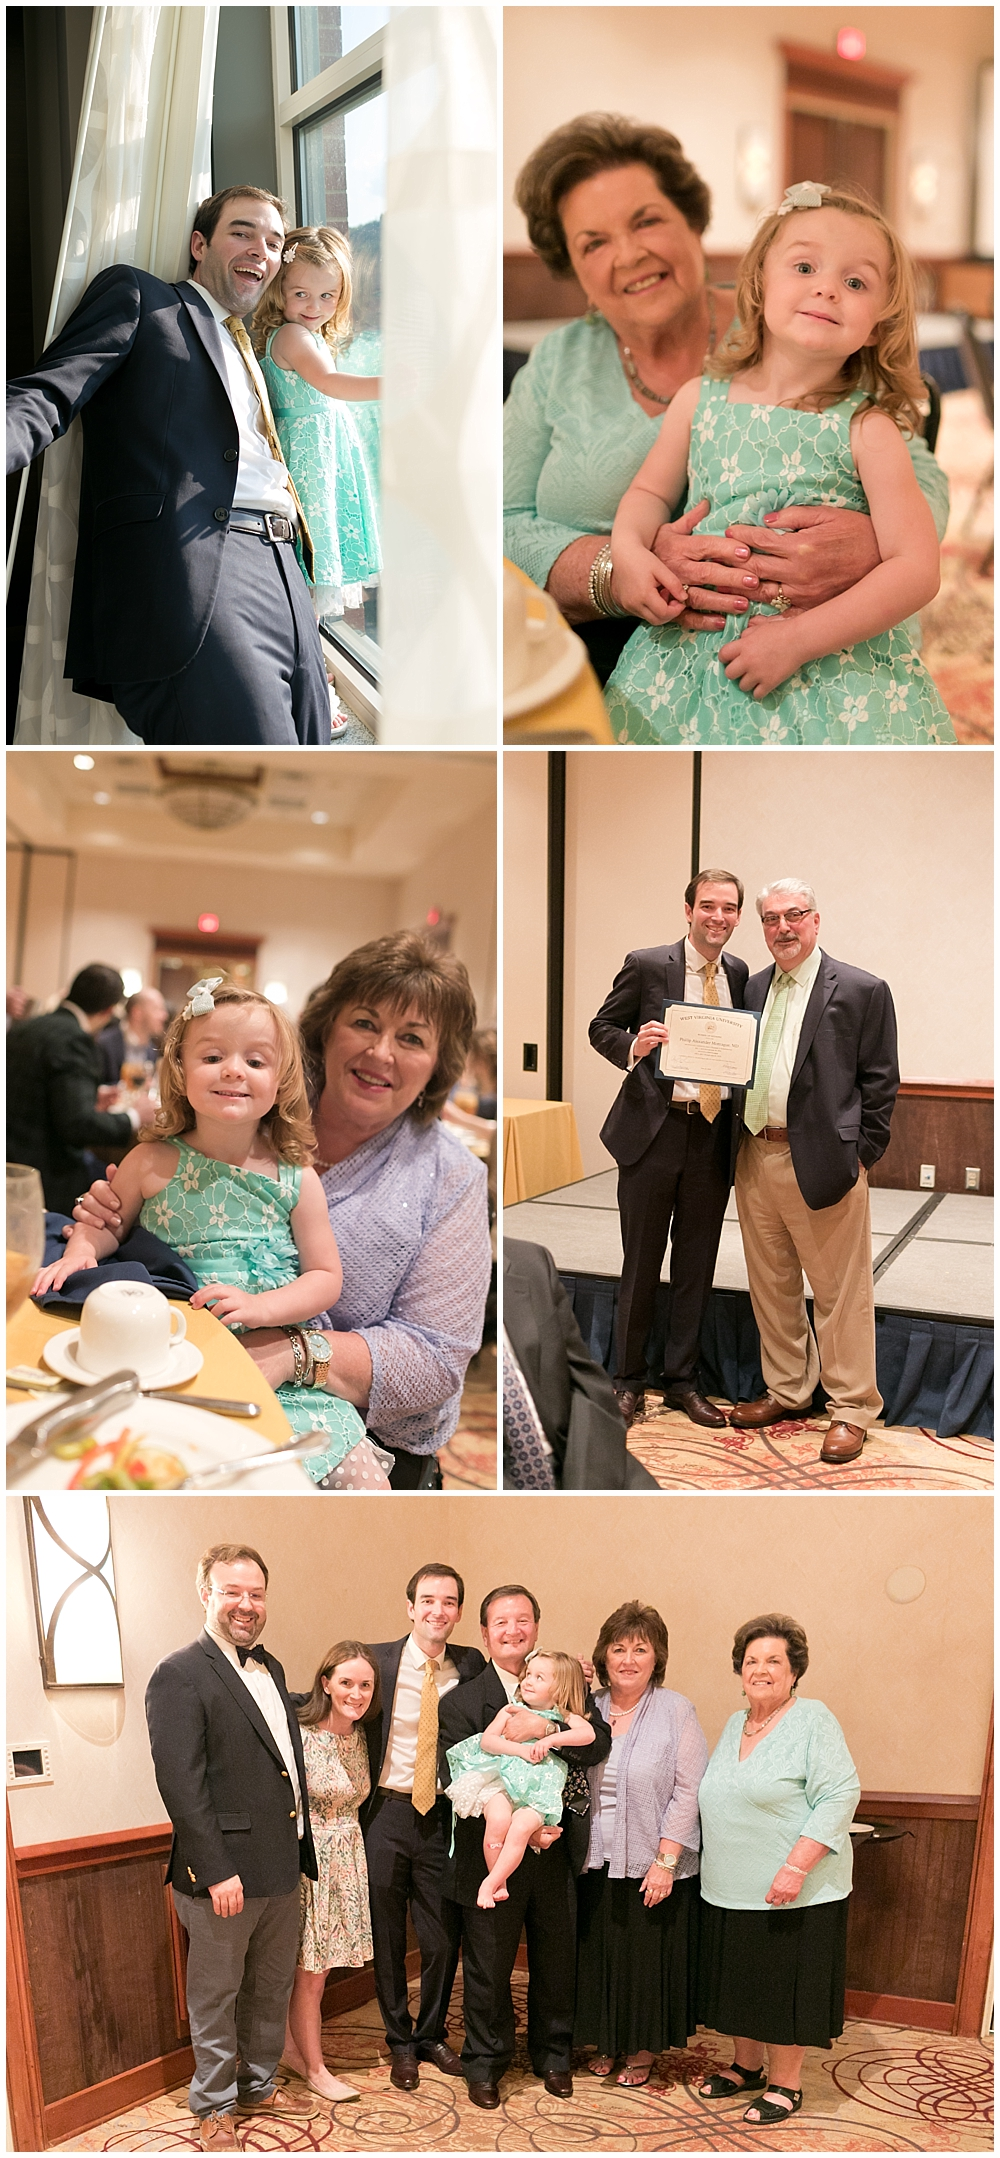 family celebrating medical residency graduation at banquet